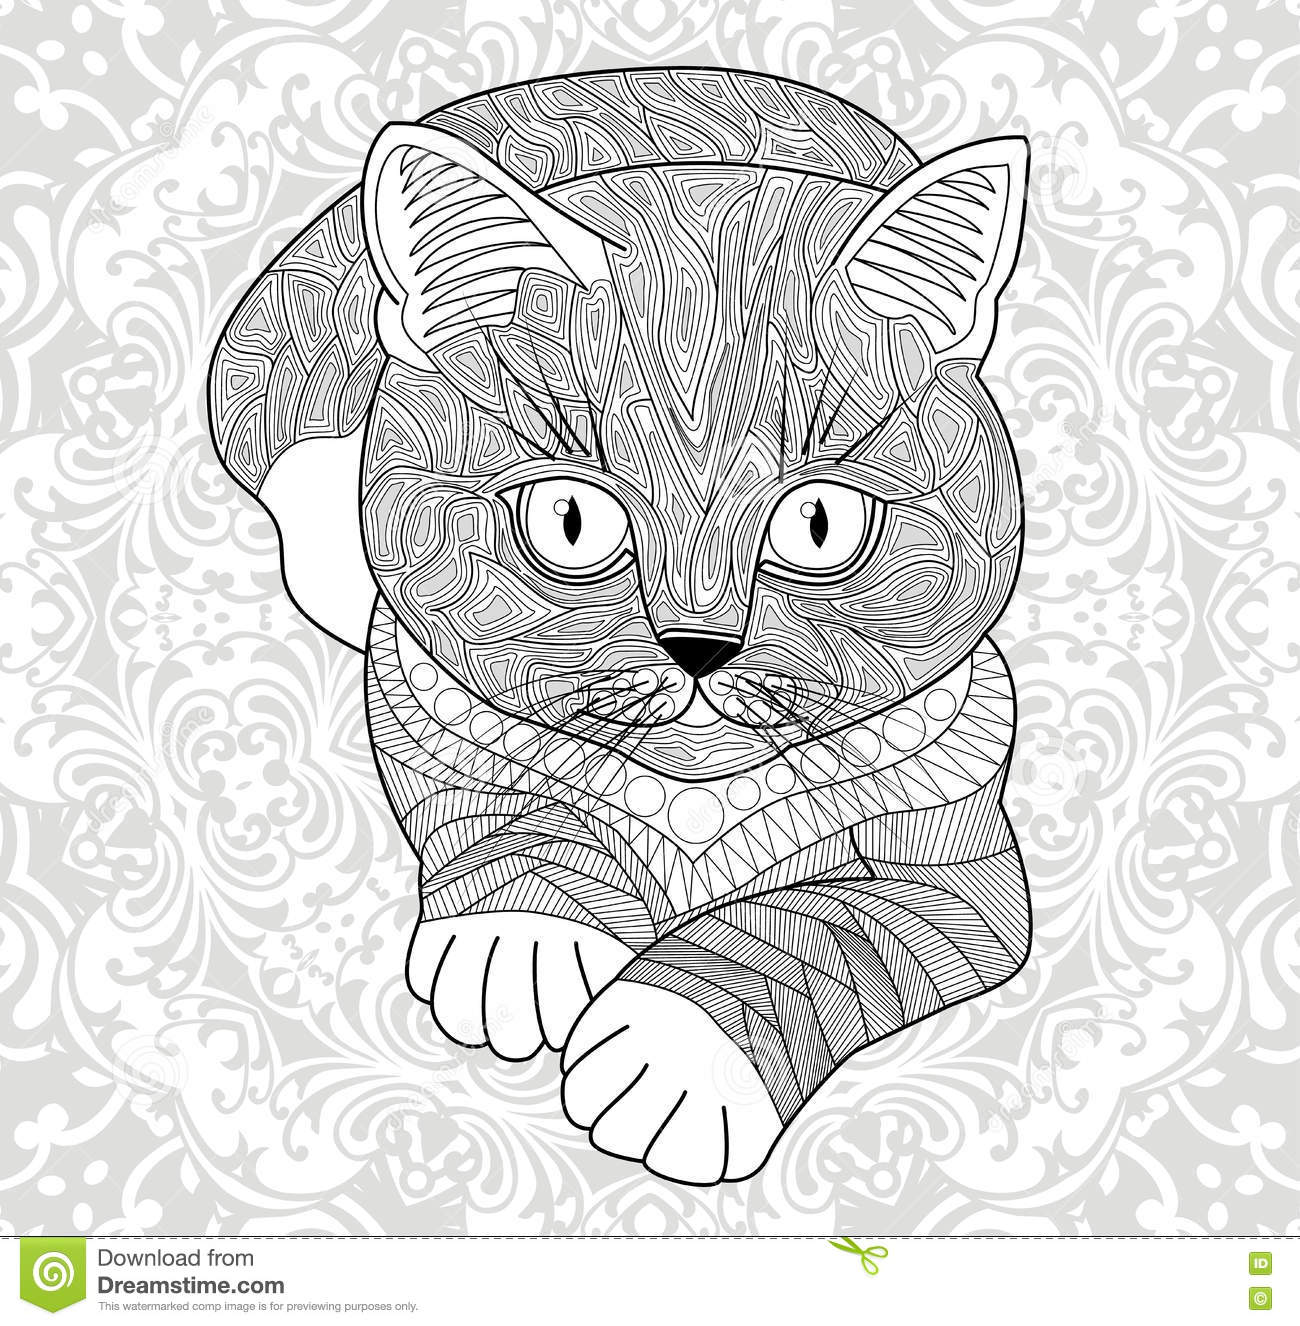 Coloring pages for adults abstract - Coloring Pages For Adults Hand Painted Cat With